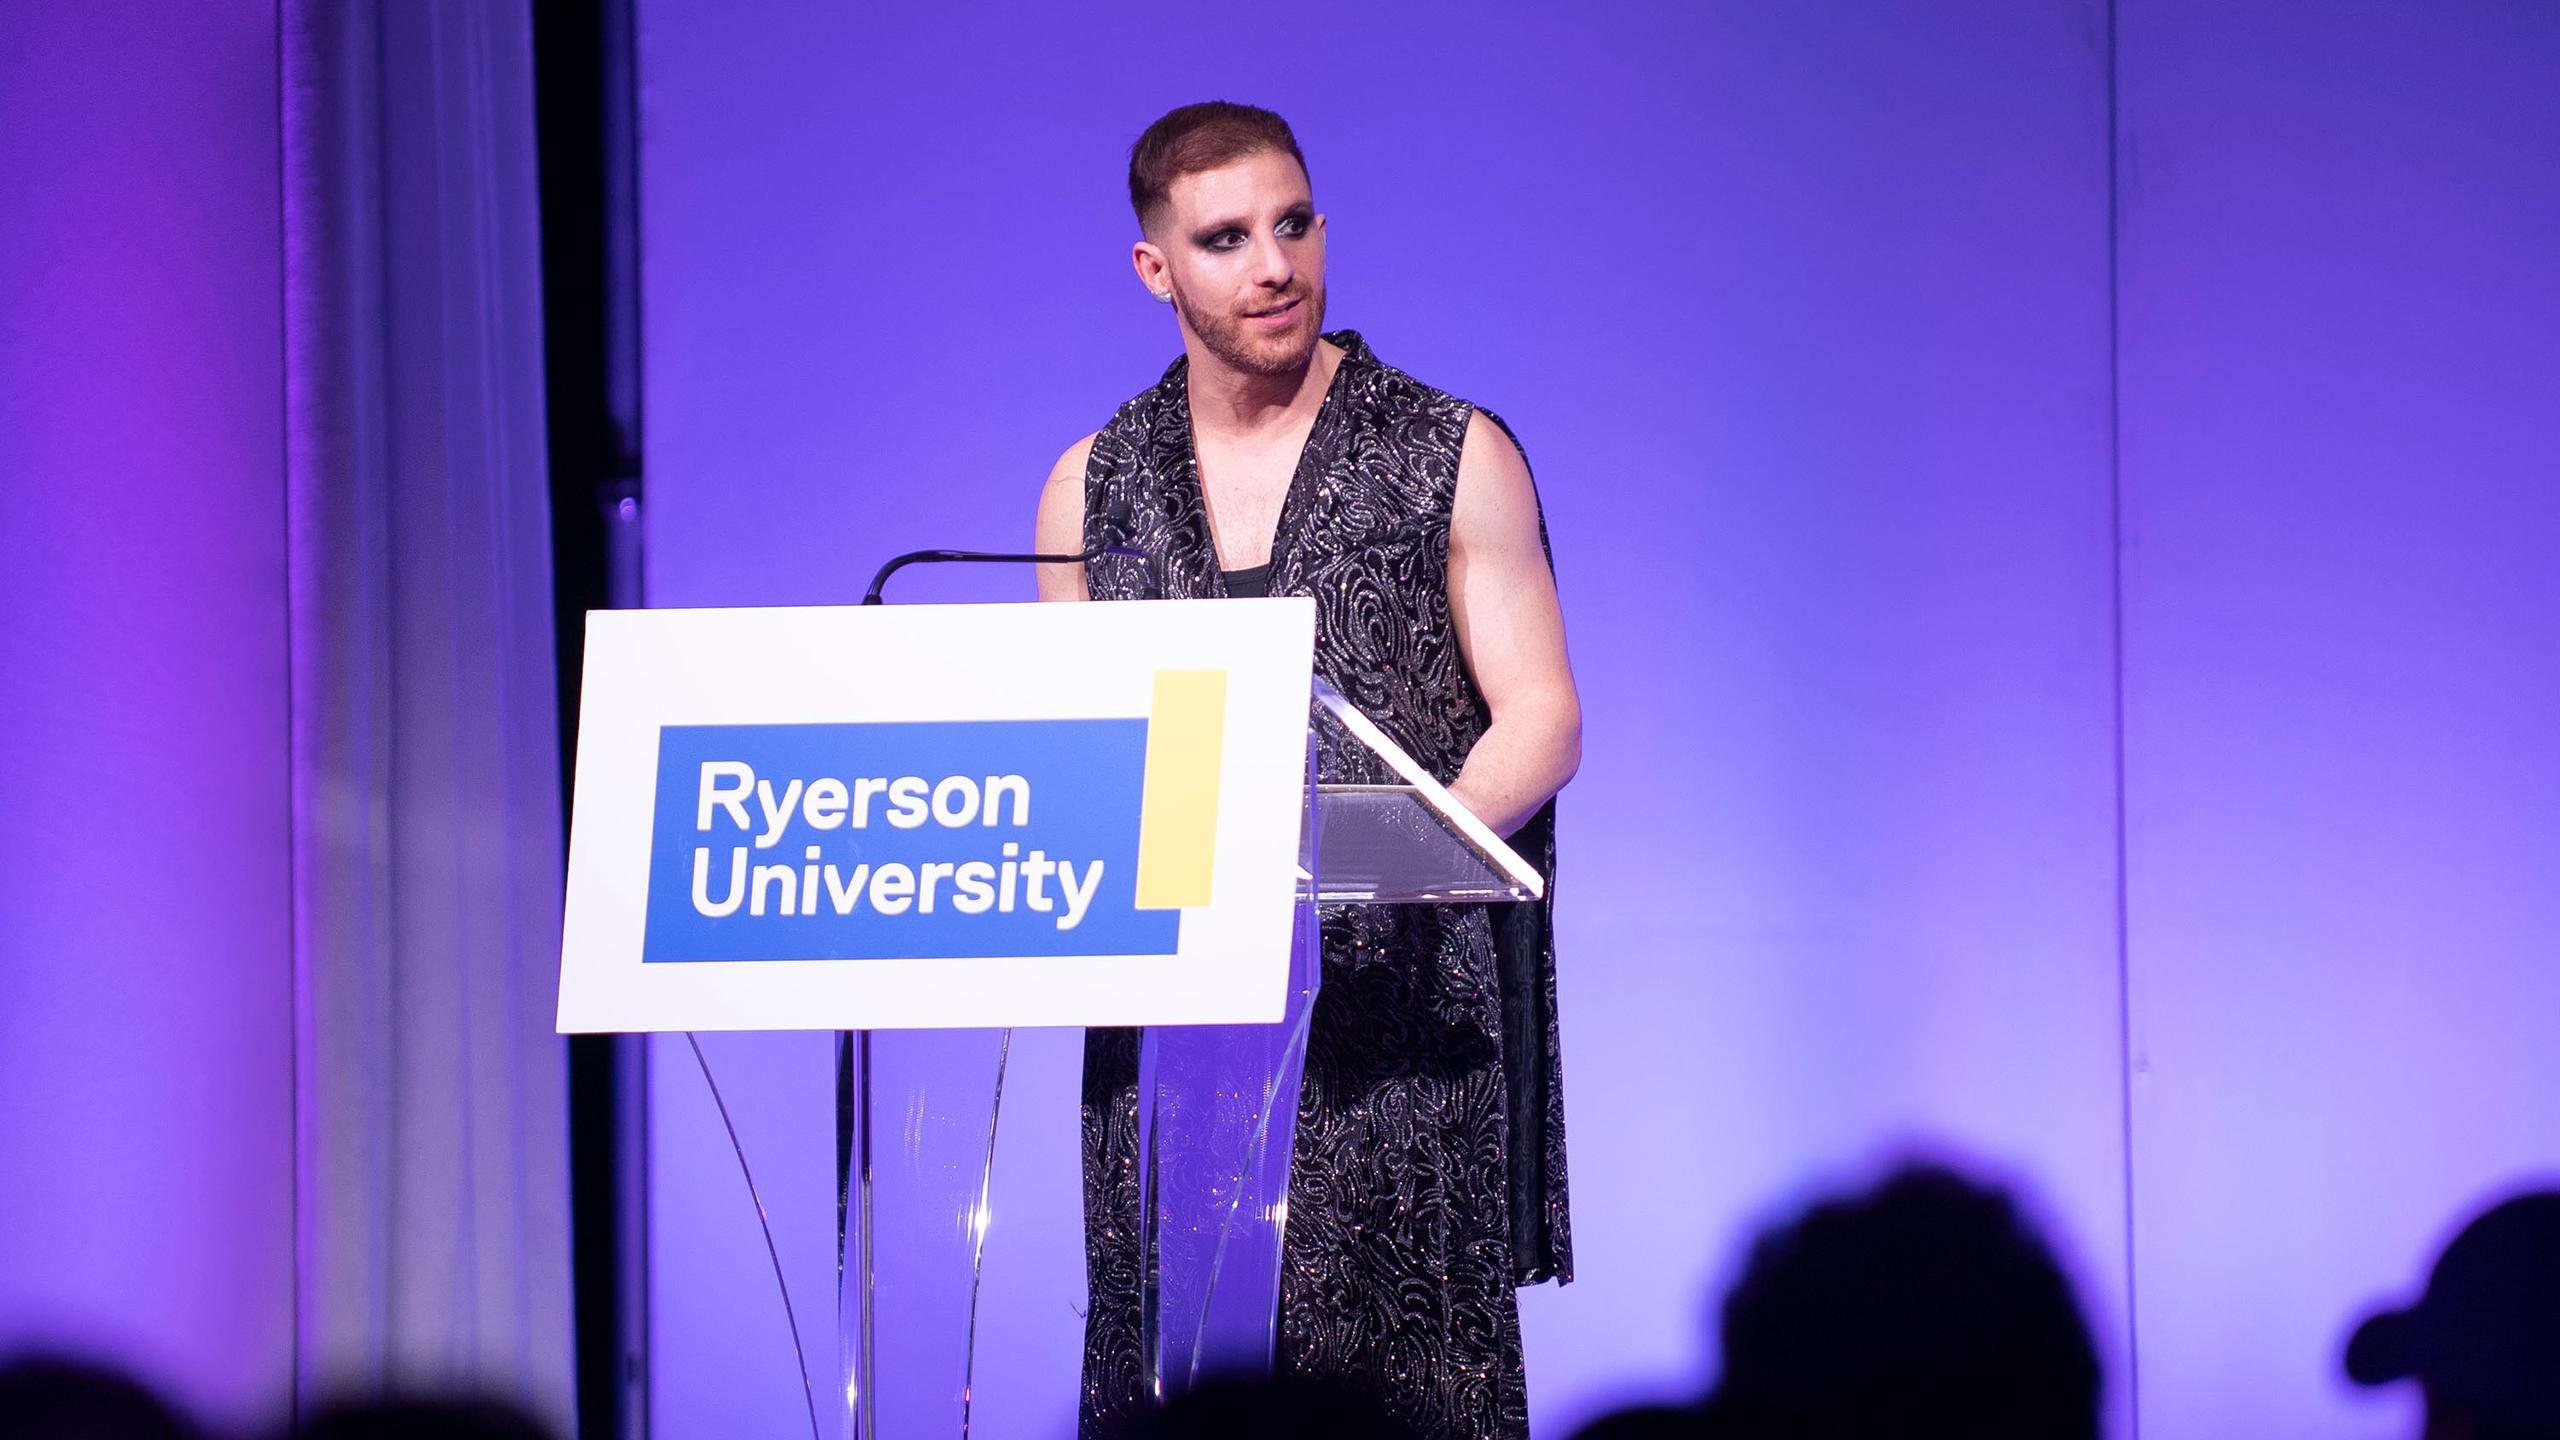 A photo of Ben Barry at a podium that says Ryerson University.